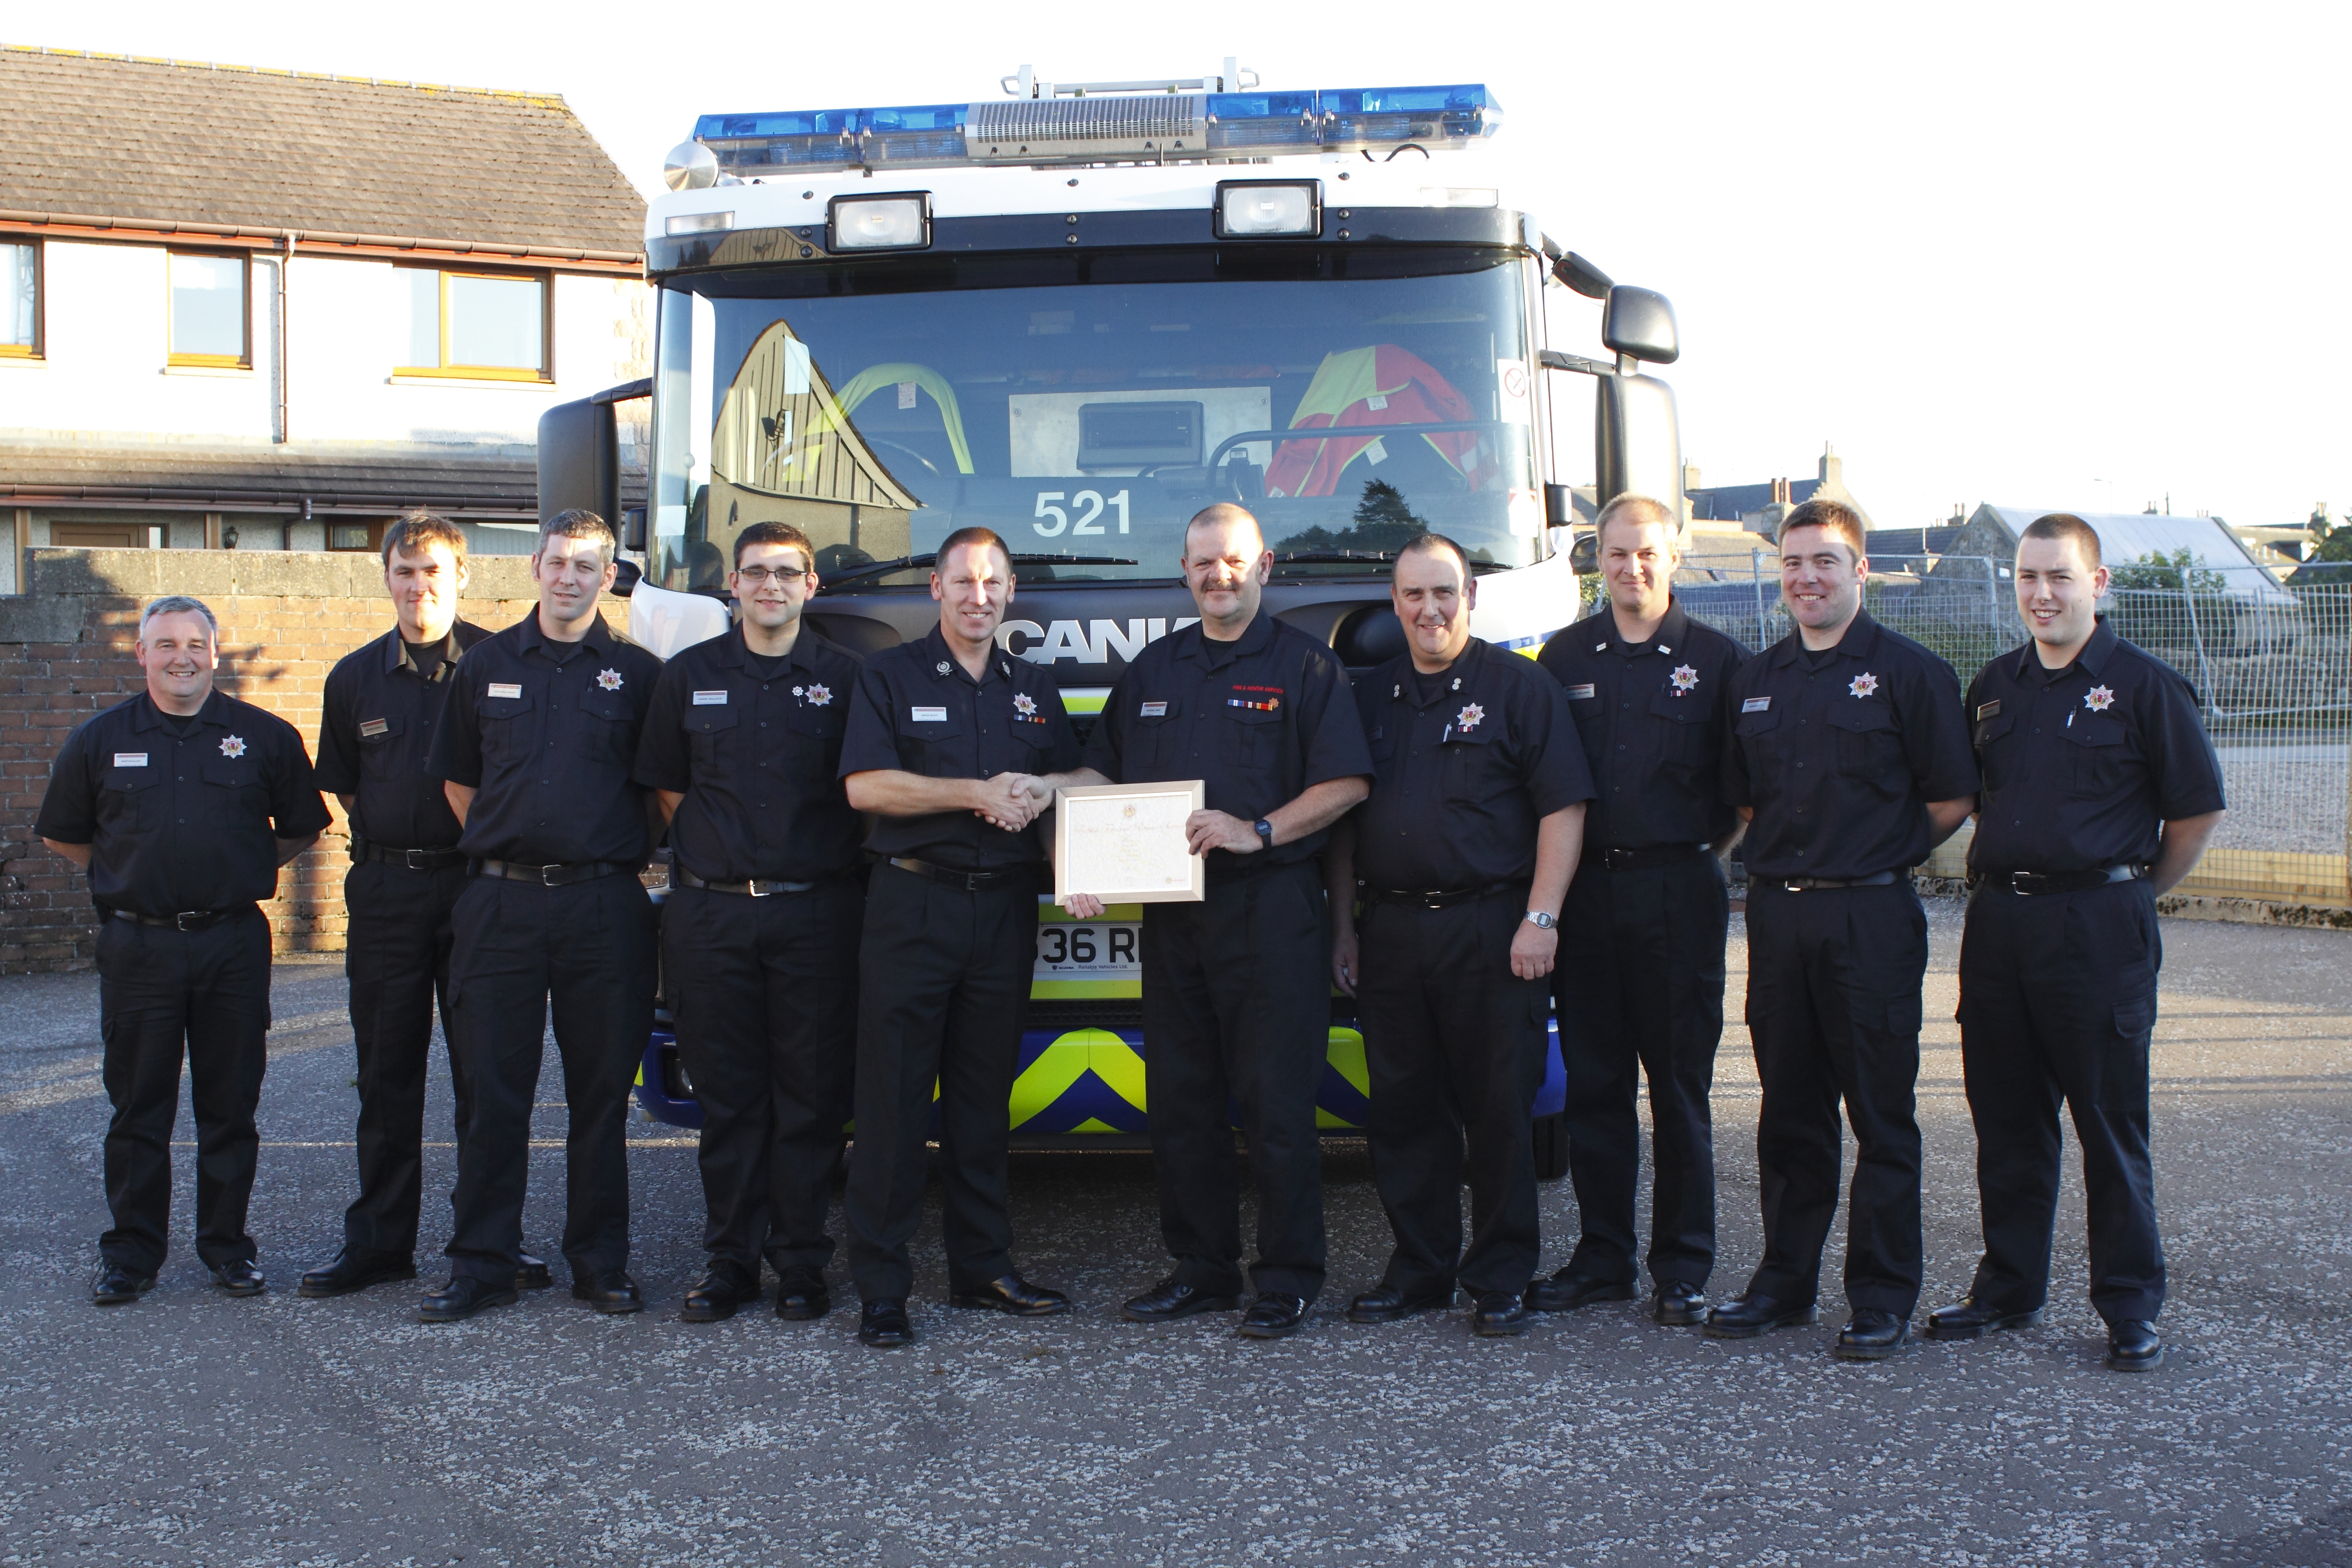 SFRS recognises 20 years of service by Aberdeenshire firefighter